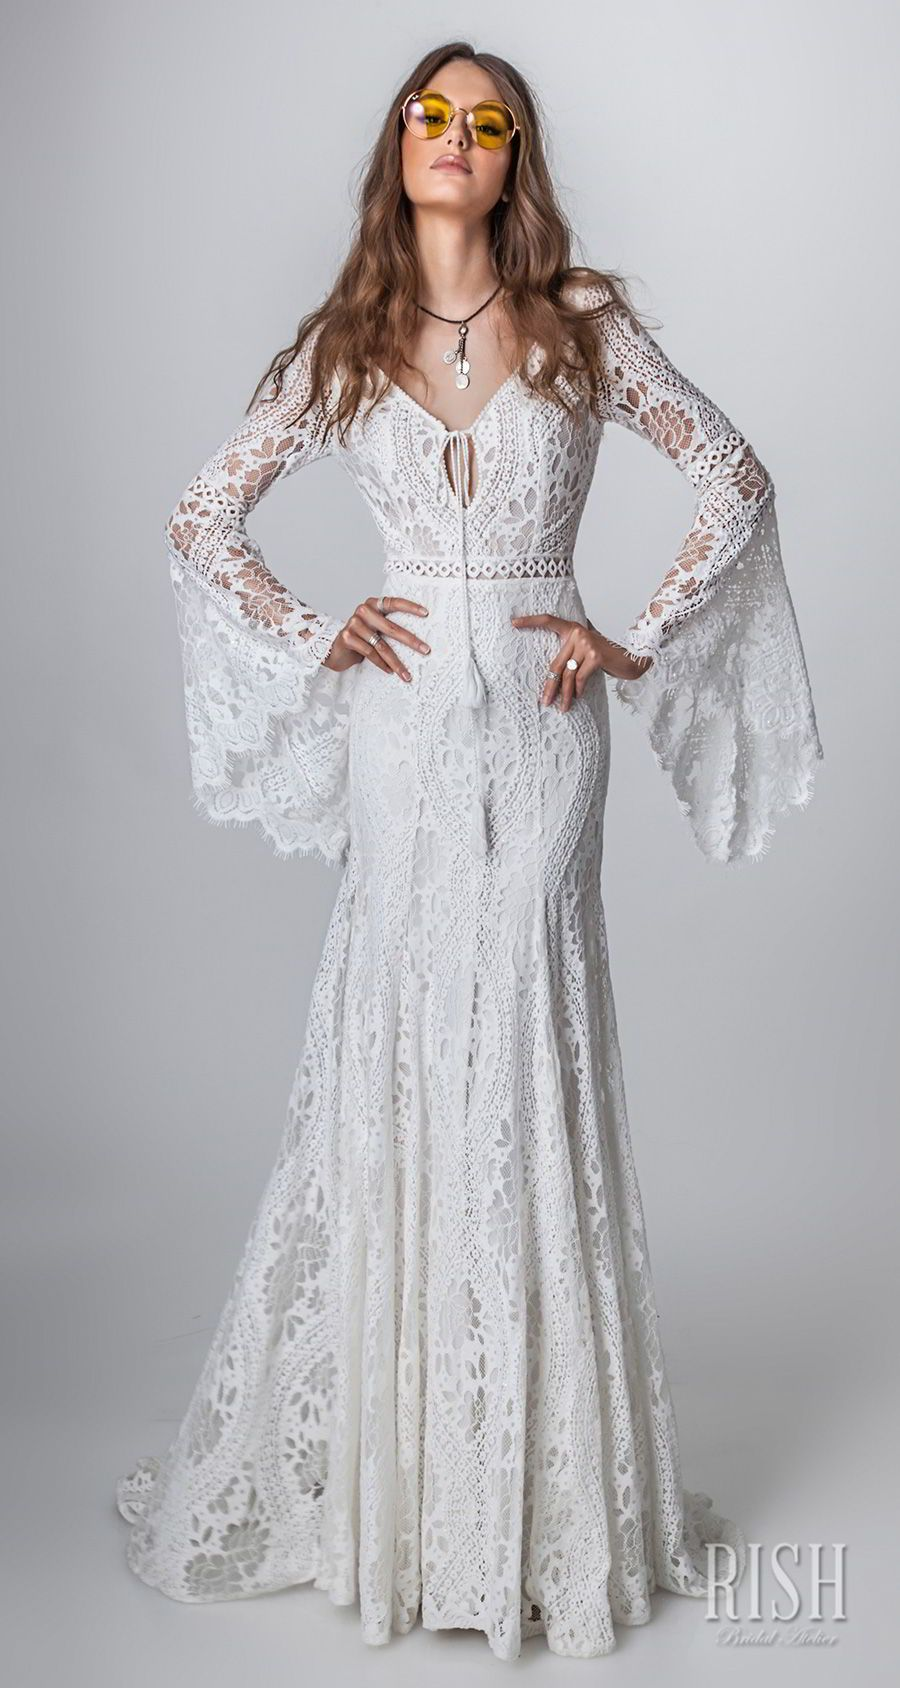 Rish bridal ucsun danceud collection u boho chic wedding dresses